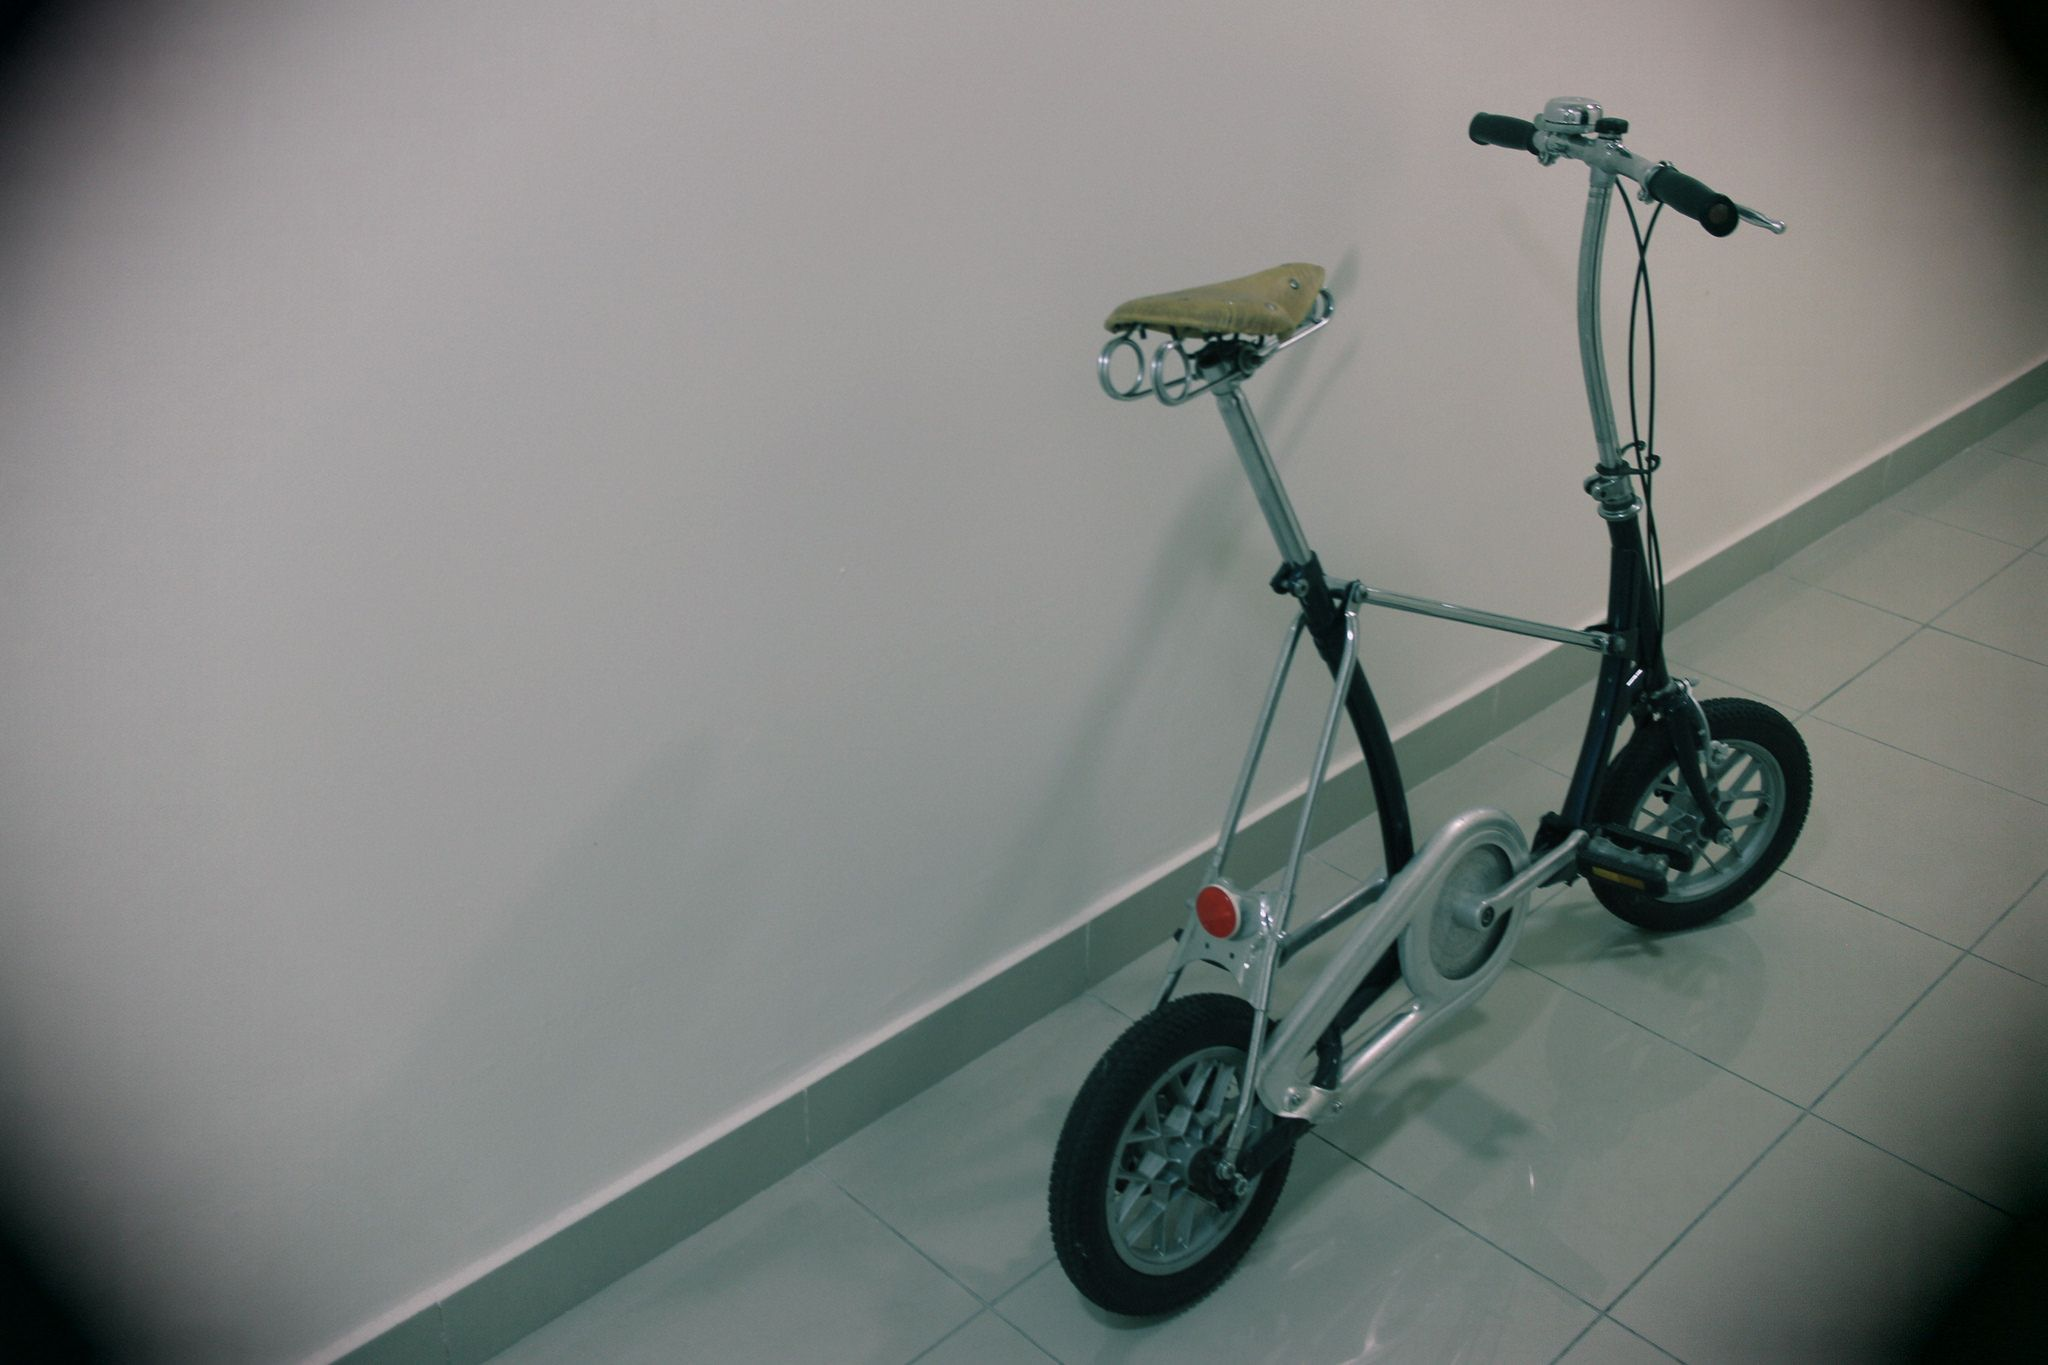 One Touch The Bridgestone Picnica Folding Bicycle And Bicycling